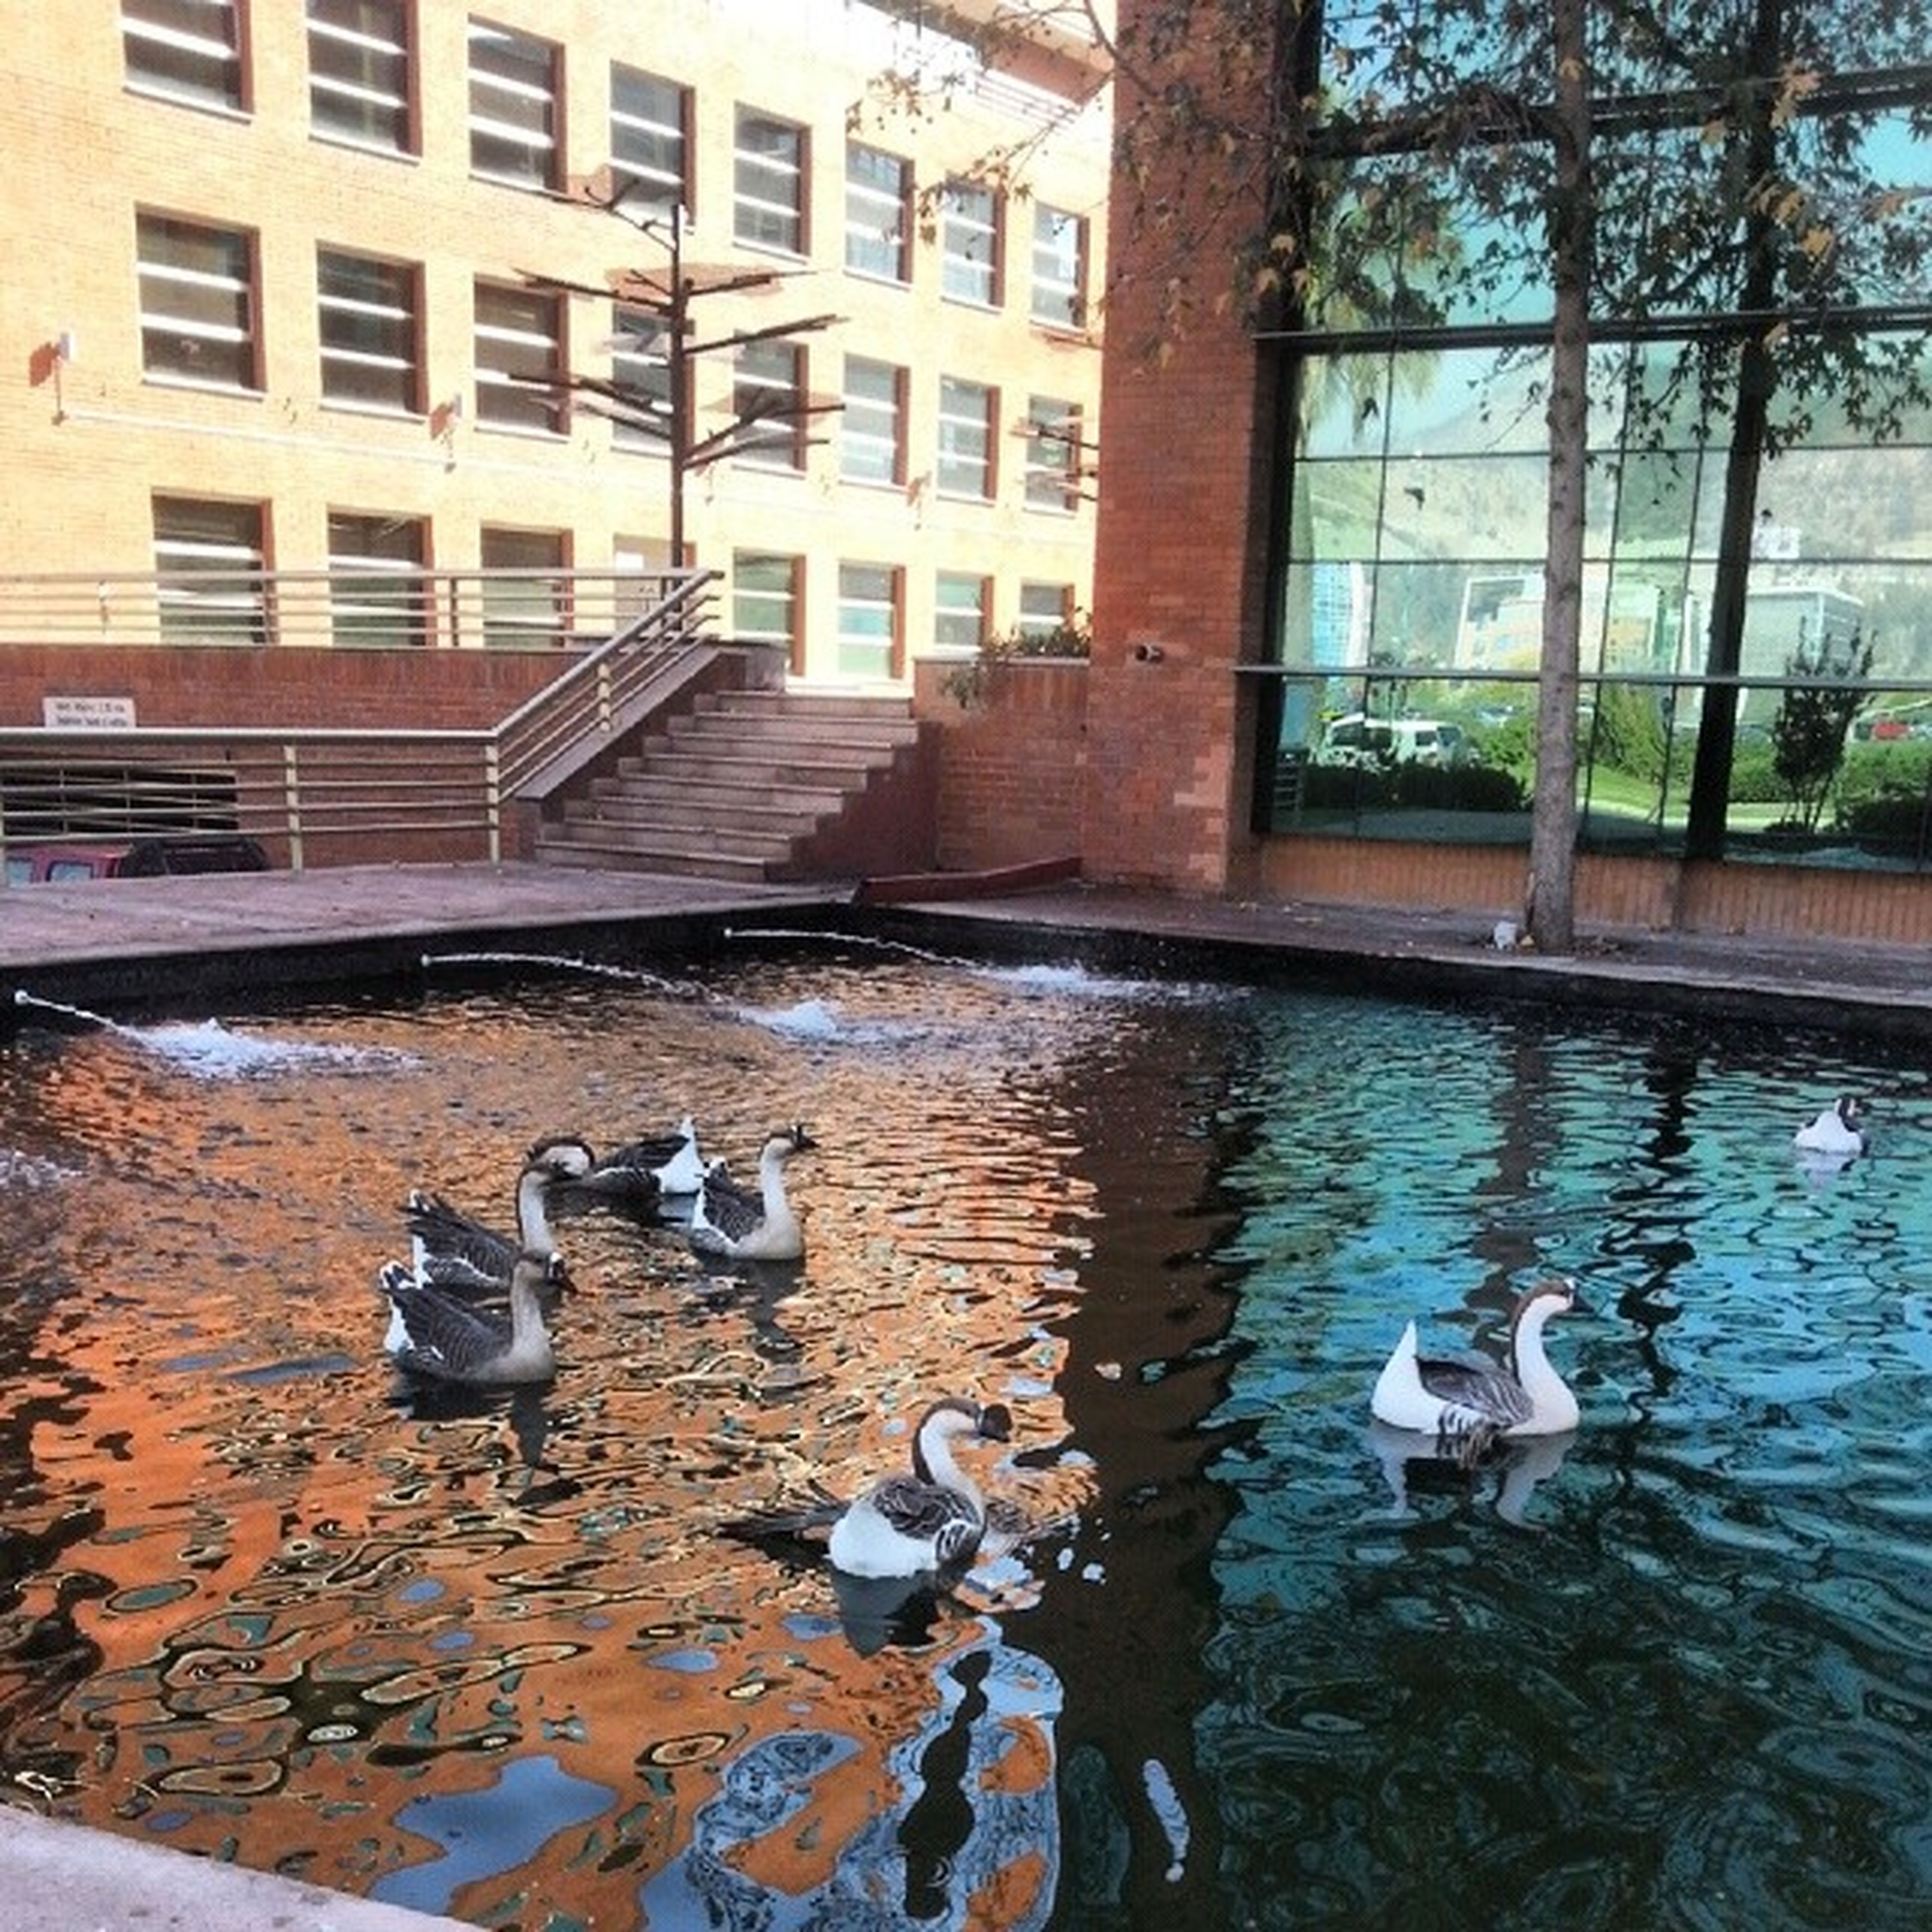 bird, building exterior, built structure, architecture, animal themes, water, animals in the wild, wildlife, city, duck, pigeon, building, reflection, day, outdoors, residential building, canal, perching, tree